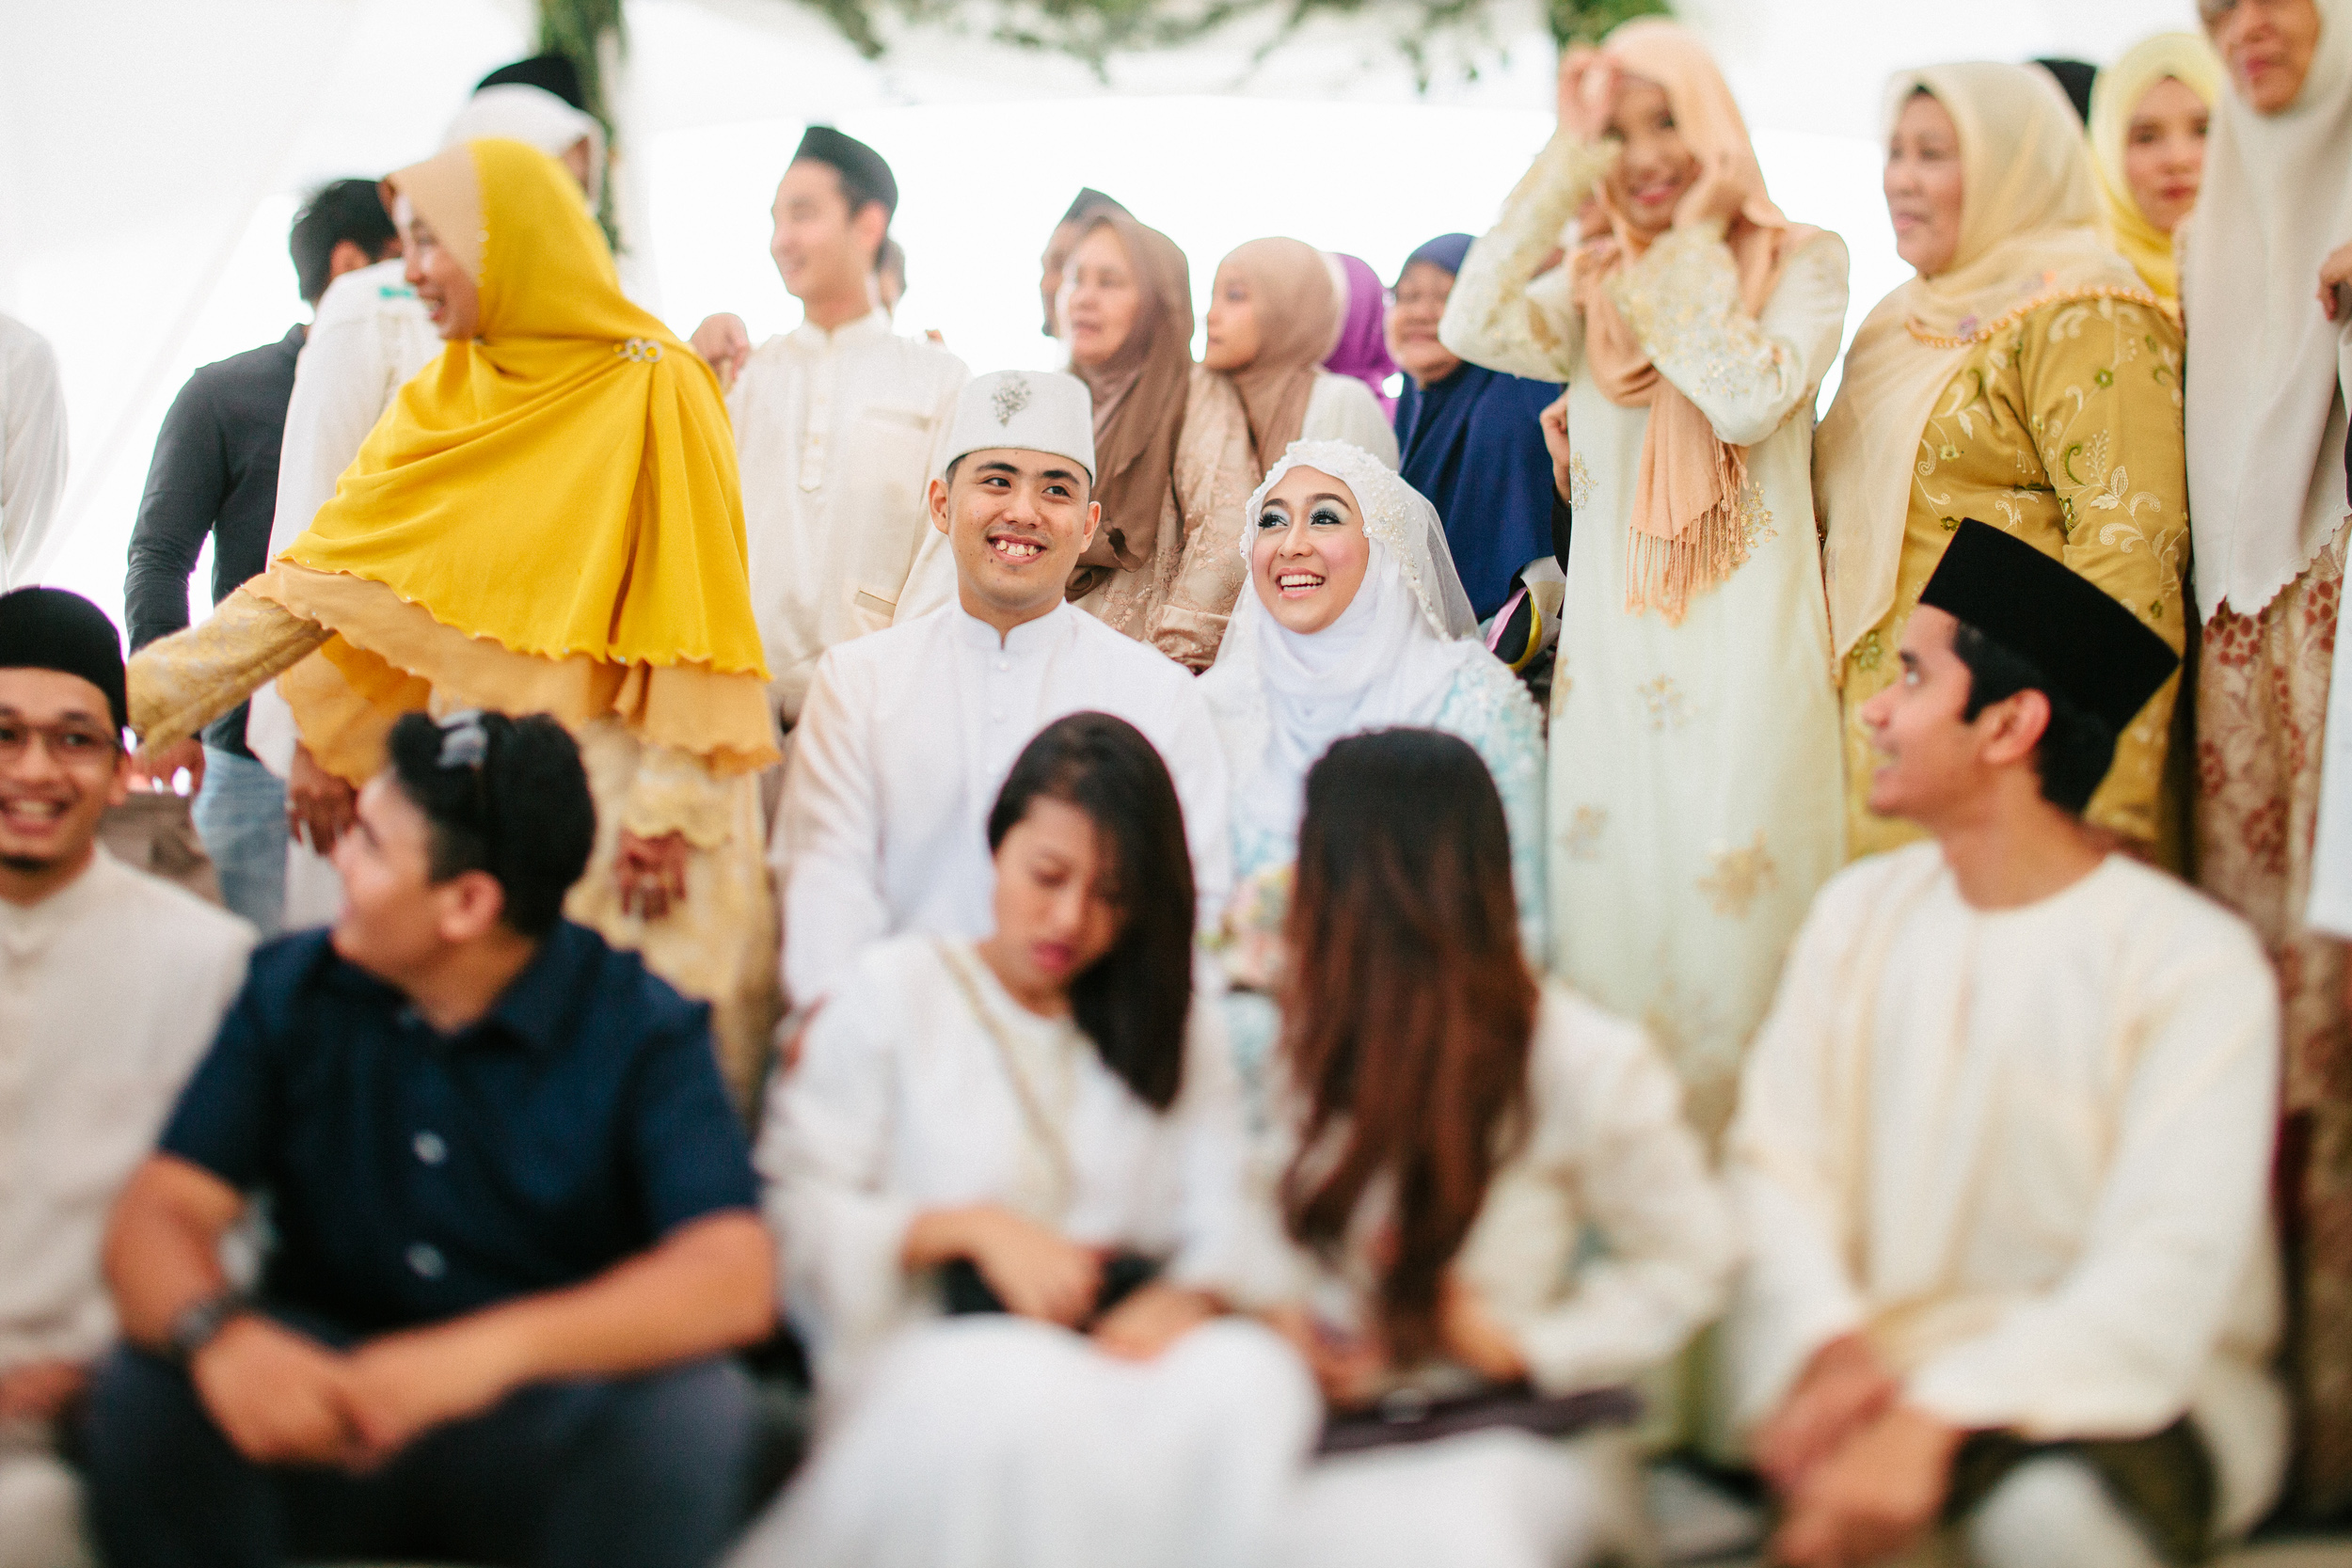 singapore-wedding-photographer-wemadethese-aisyah-helmi-26.jpg